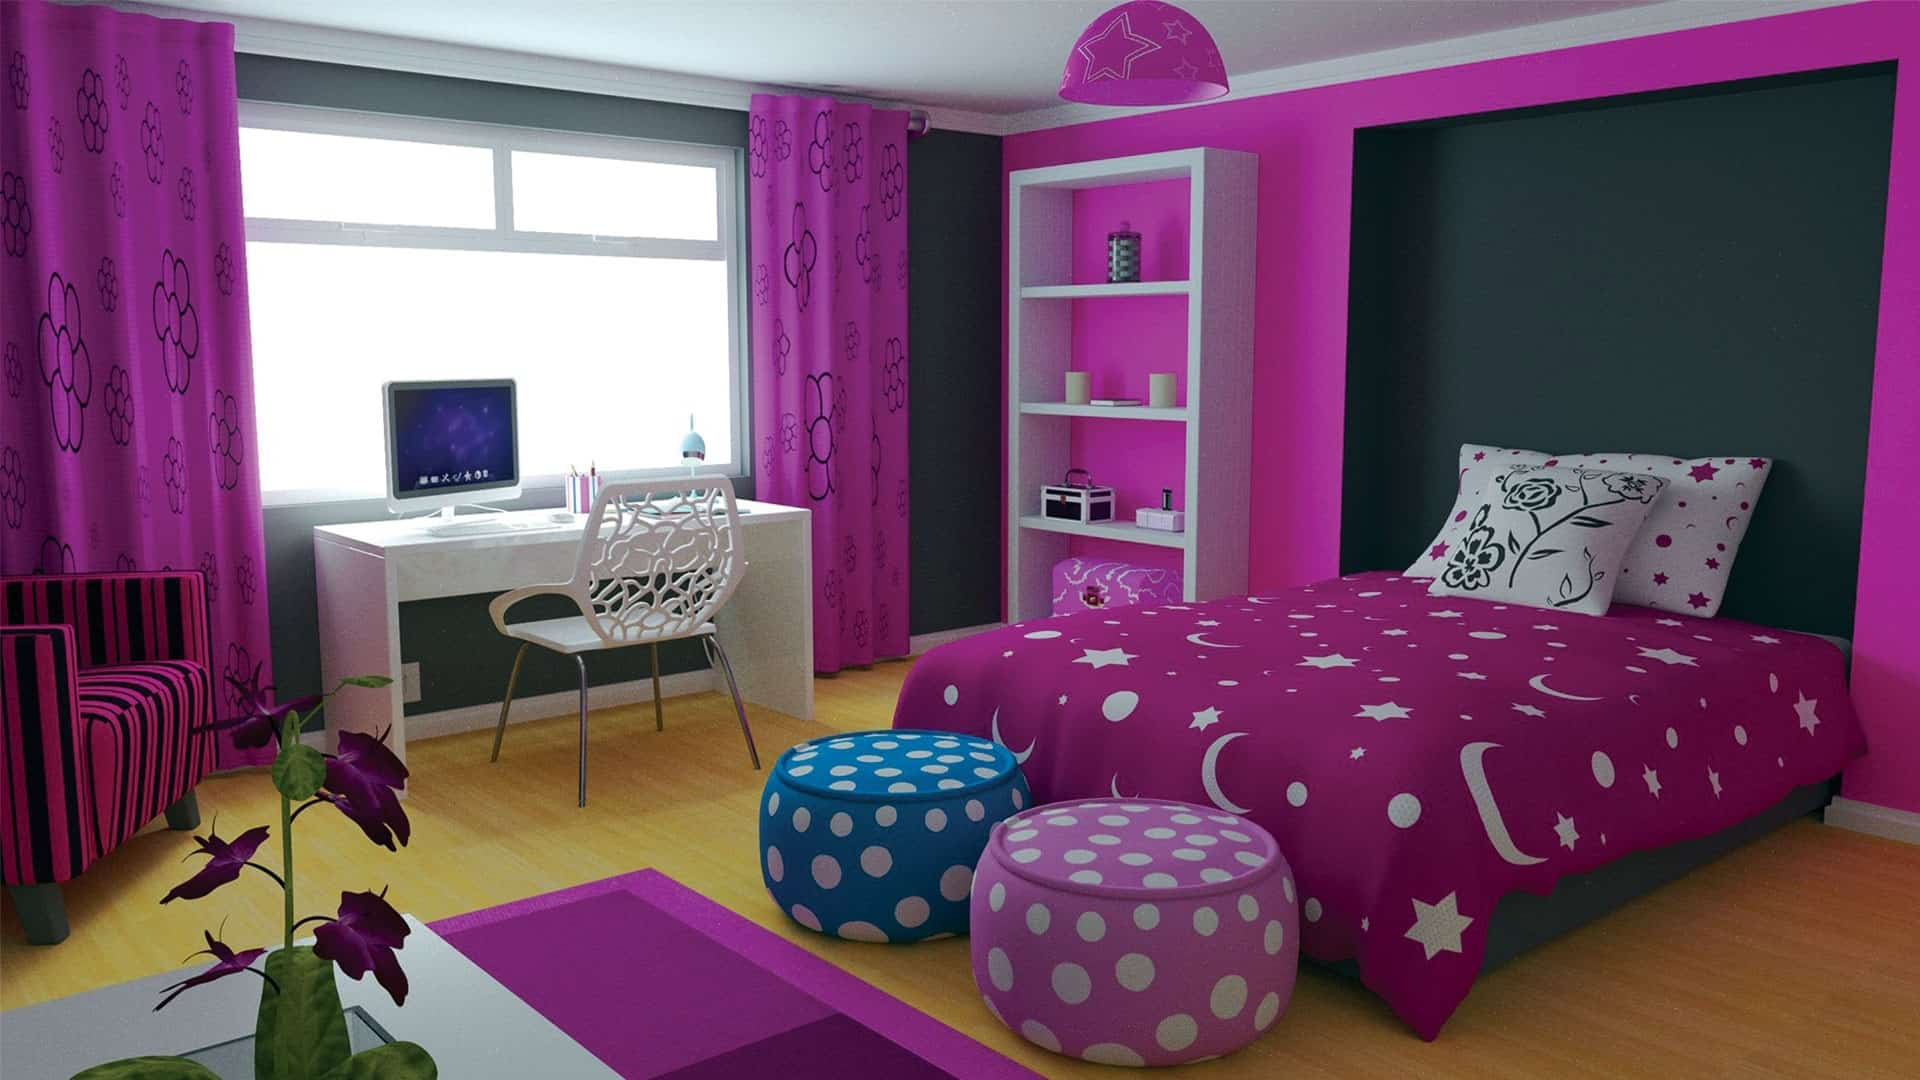 Home decor trends 2017 purple teen room house interior for Bedroom 2017 trends